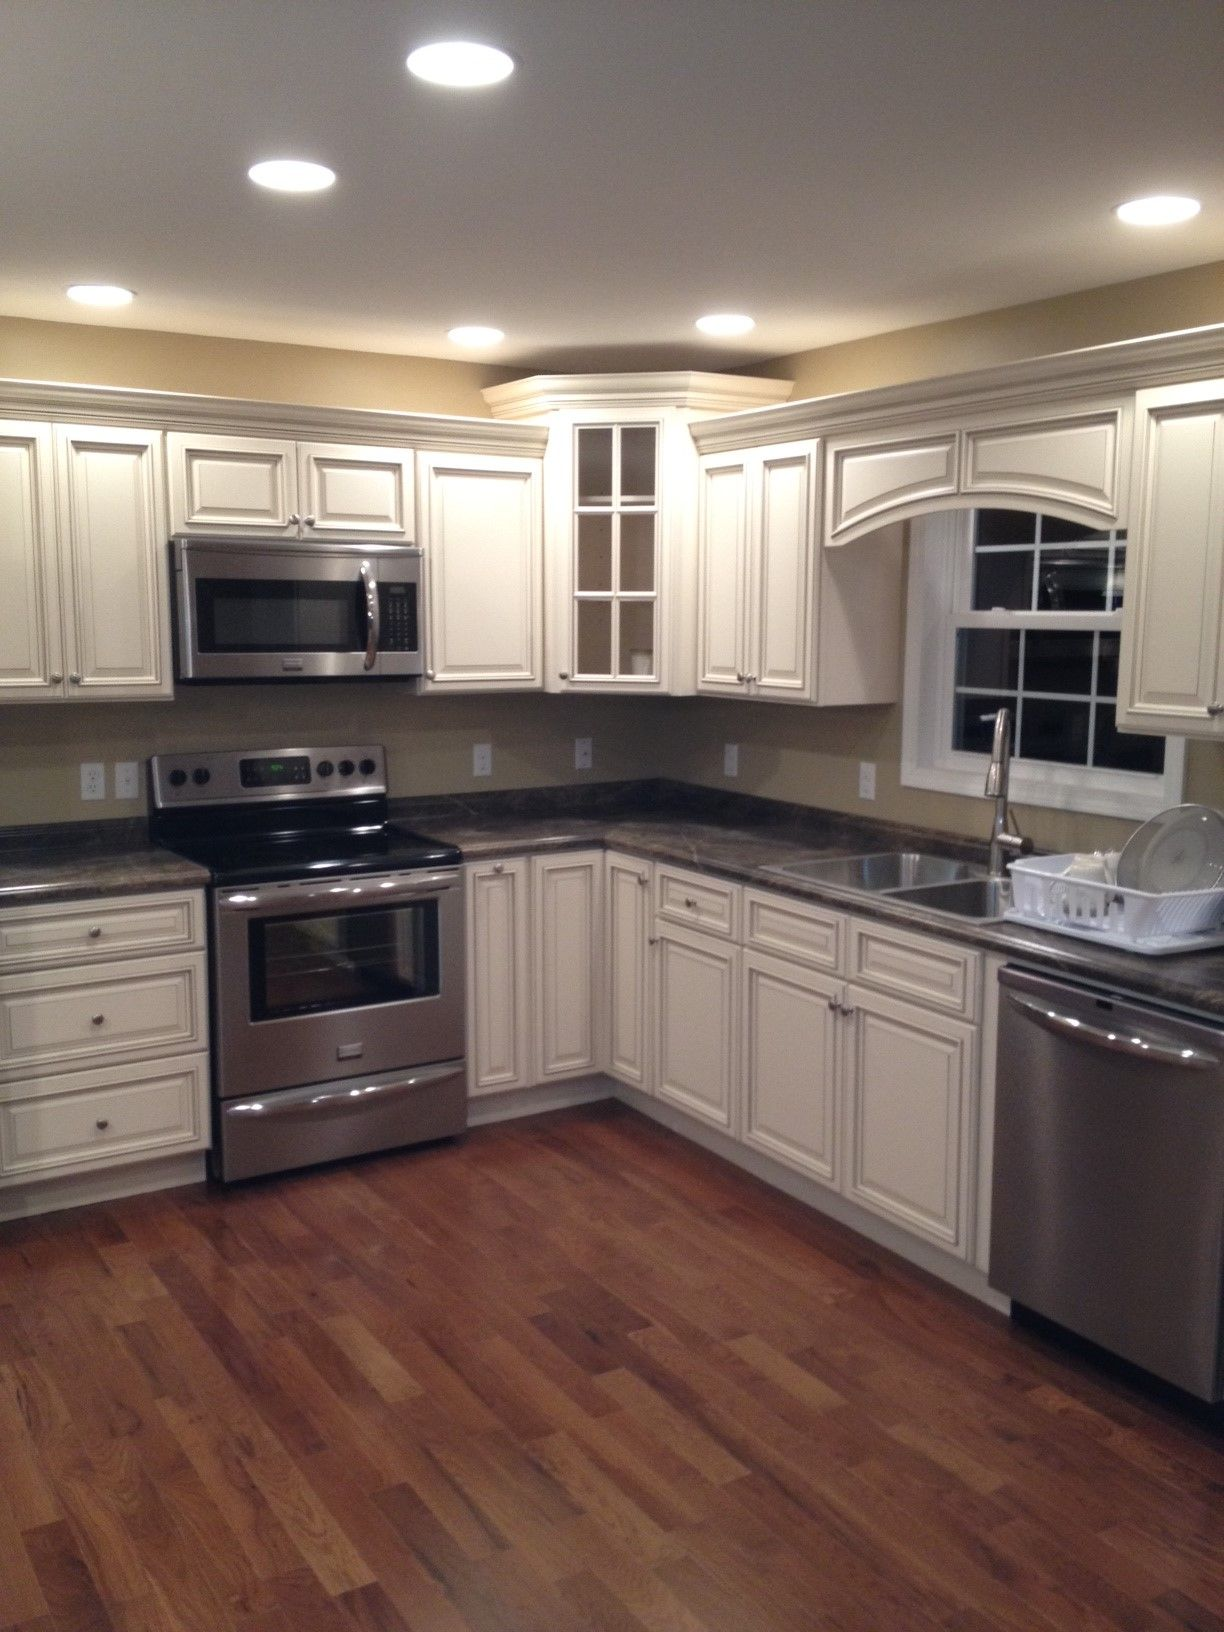 Countertop Cooking Appliances Signature Pearl Cabinets With Slate Sequoia Countertops Leslie